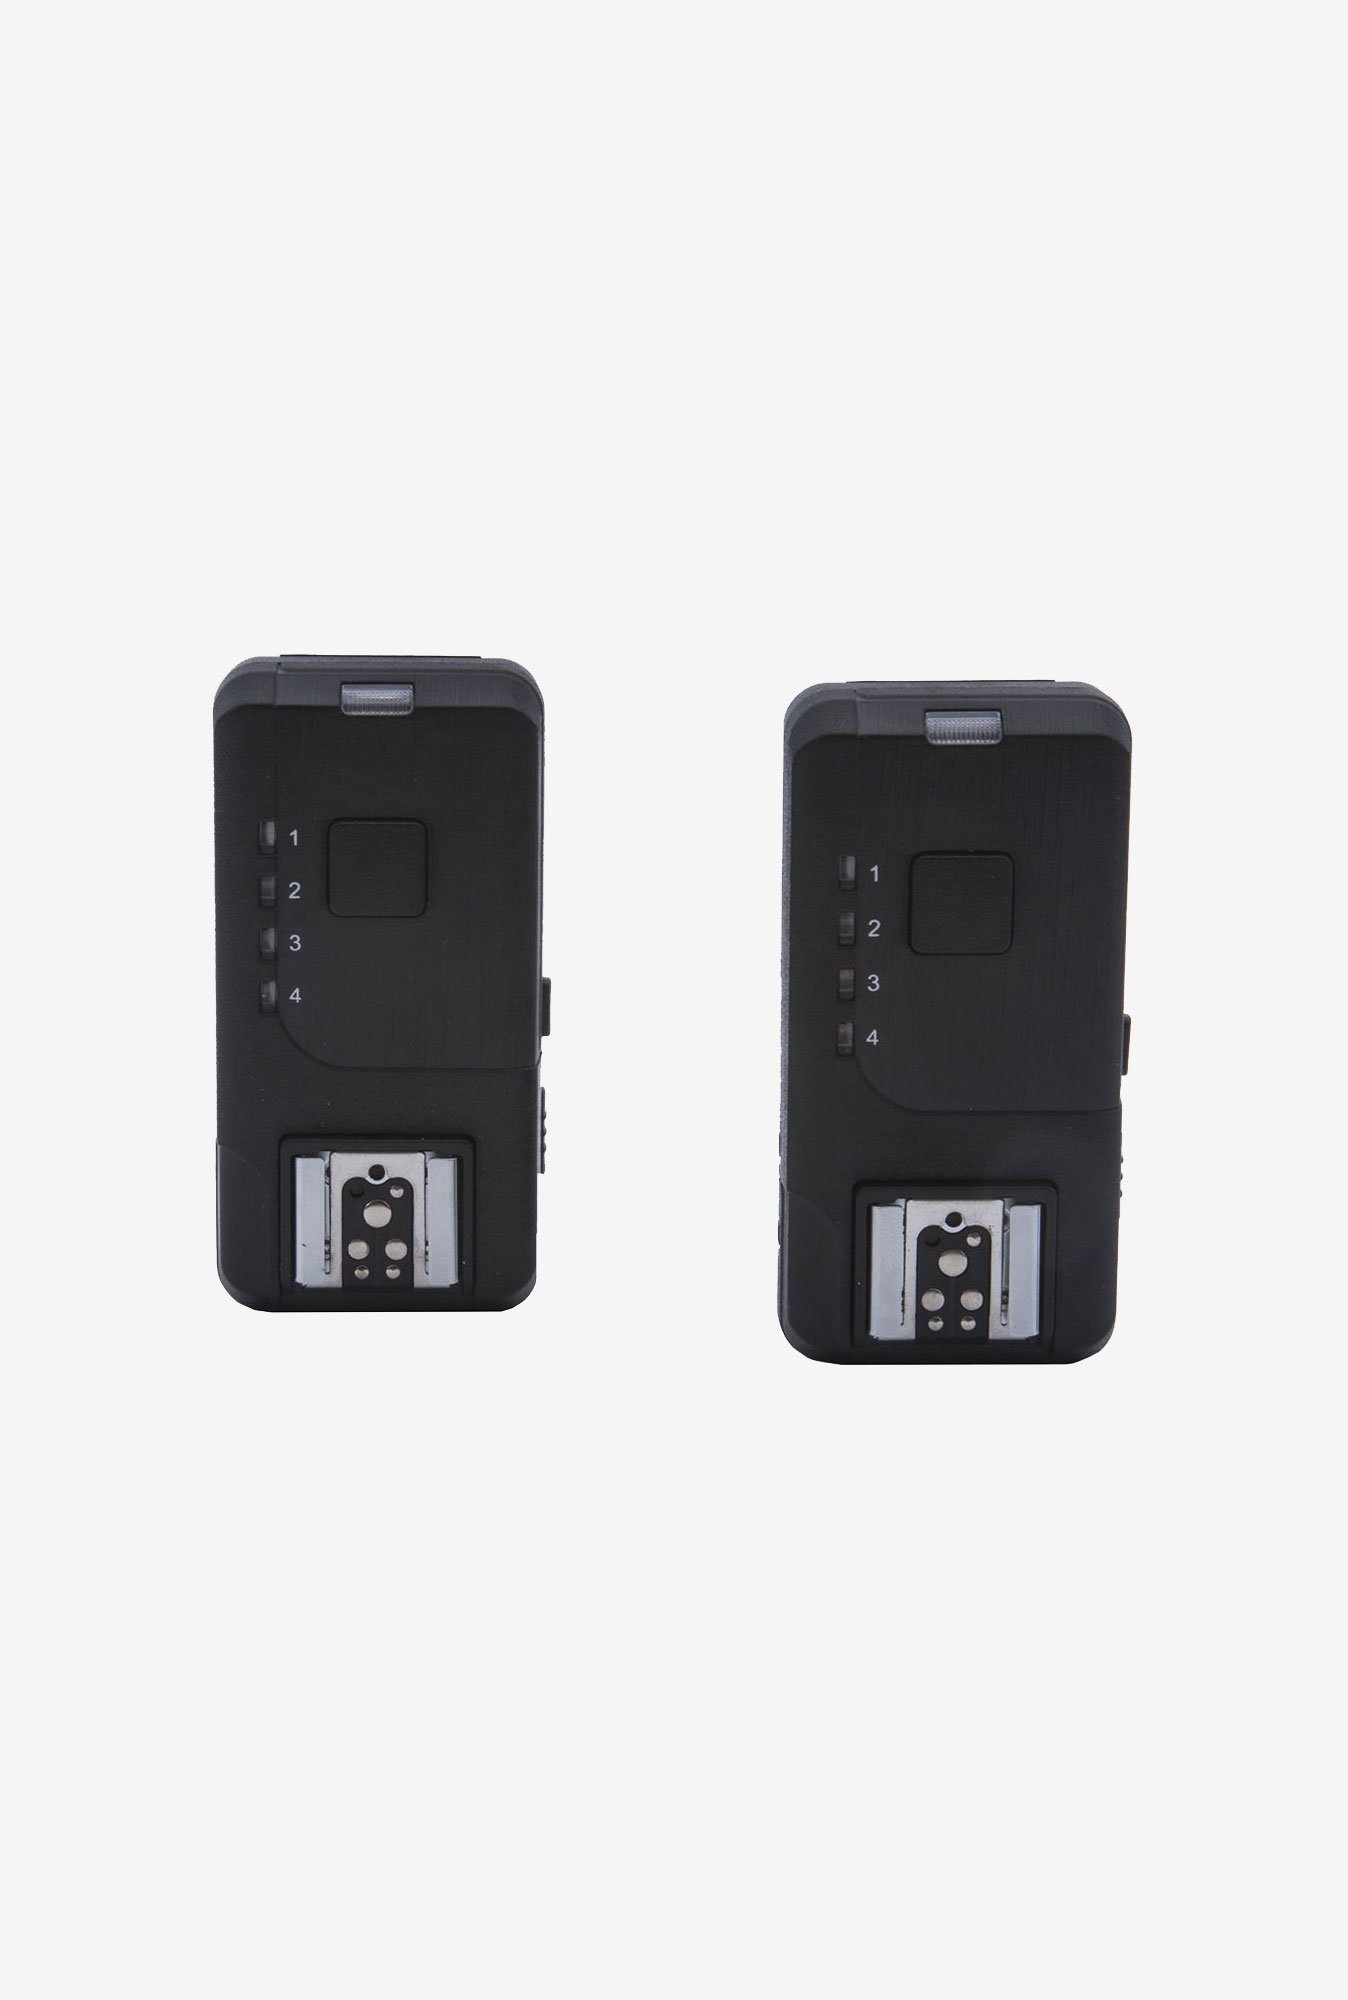 Neewer 7 Channel Wireless Trigger For Canon & Nikon Cameras